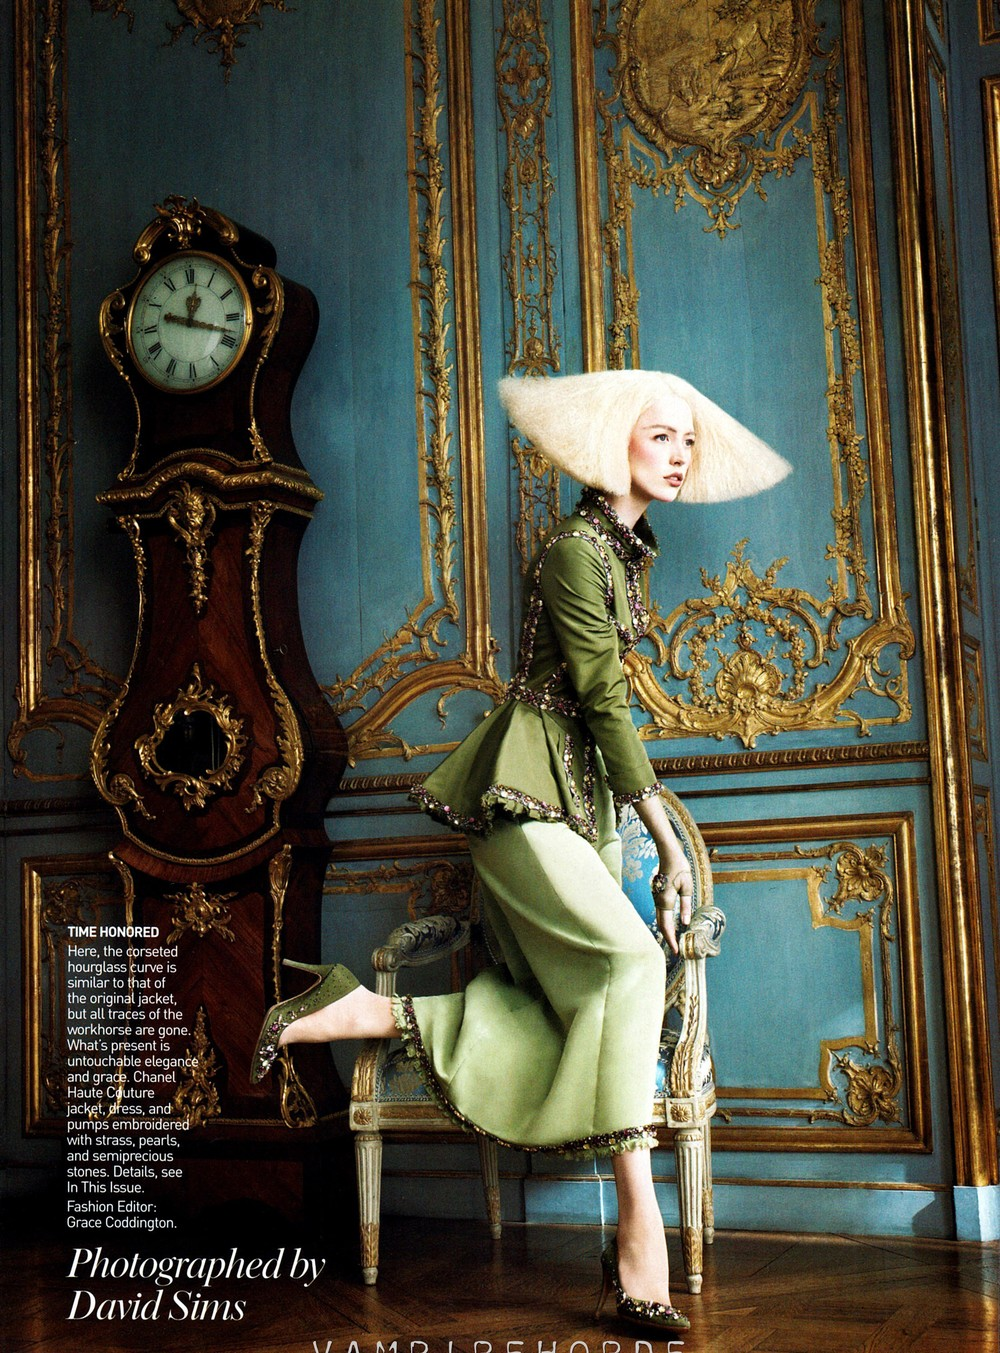 Vogue Racquel Zimmerman David Sims Grace Coddington Raji RM Interior Design Washington DC New York-3c.jpg